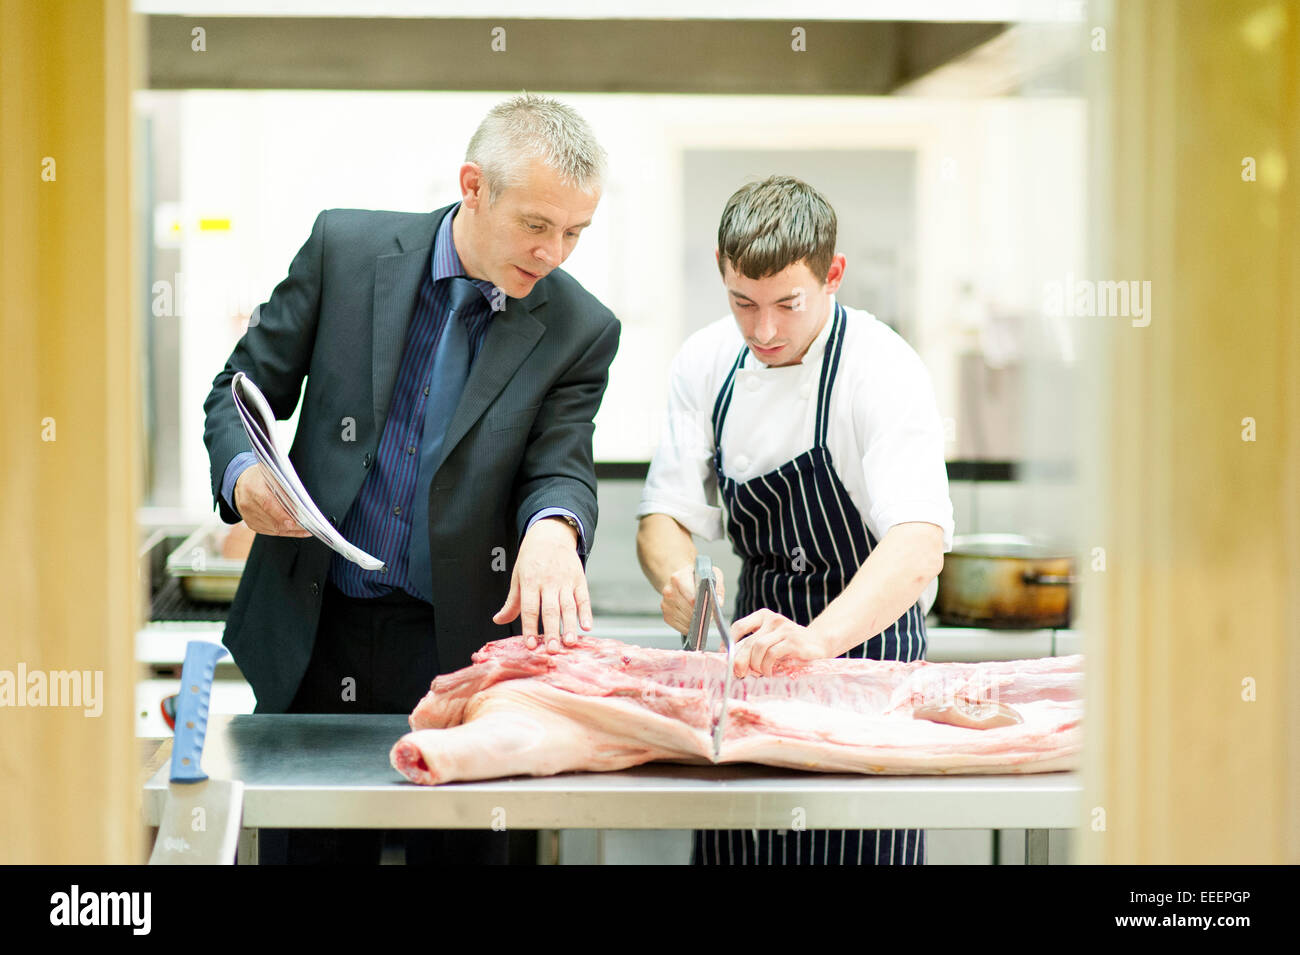 A manager teaching a trainee butcher how to cut meat - Stock Image